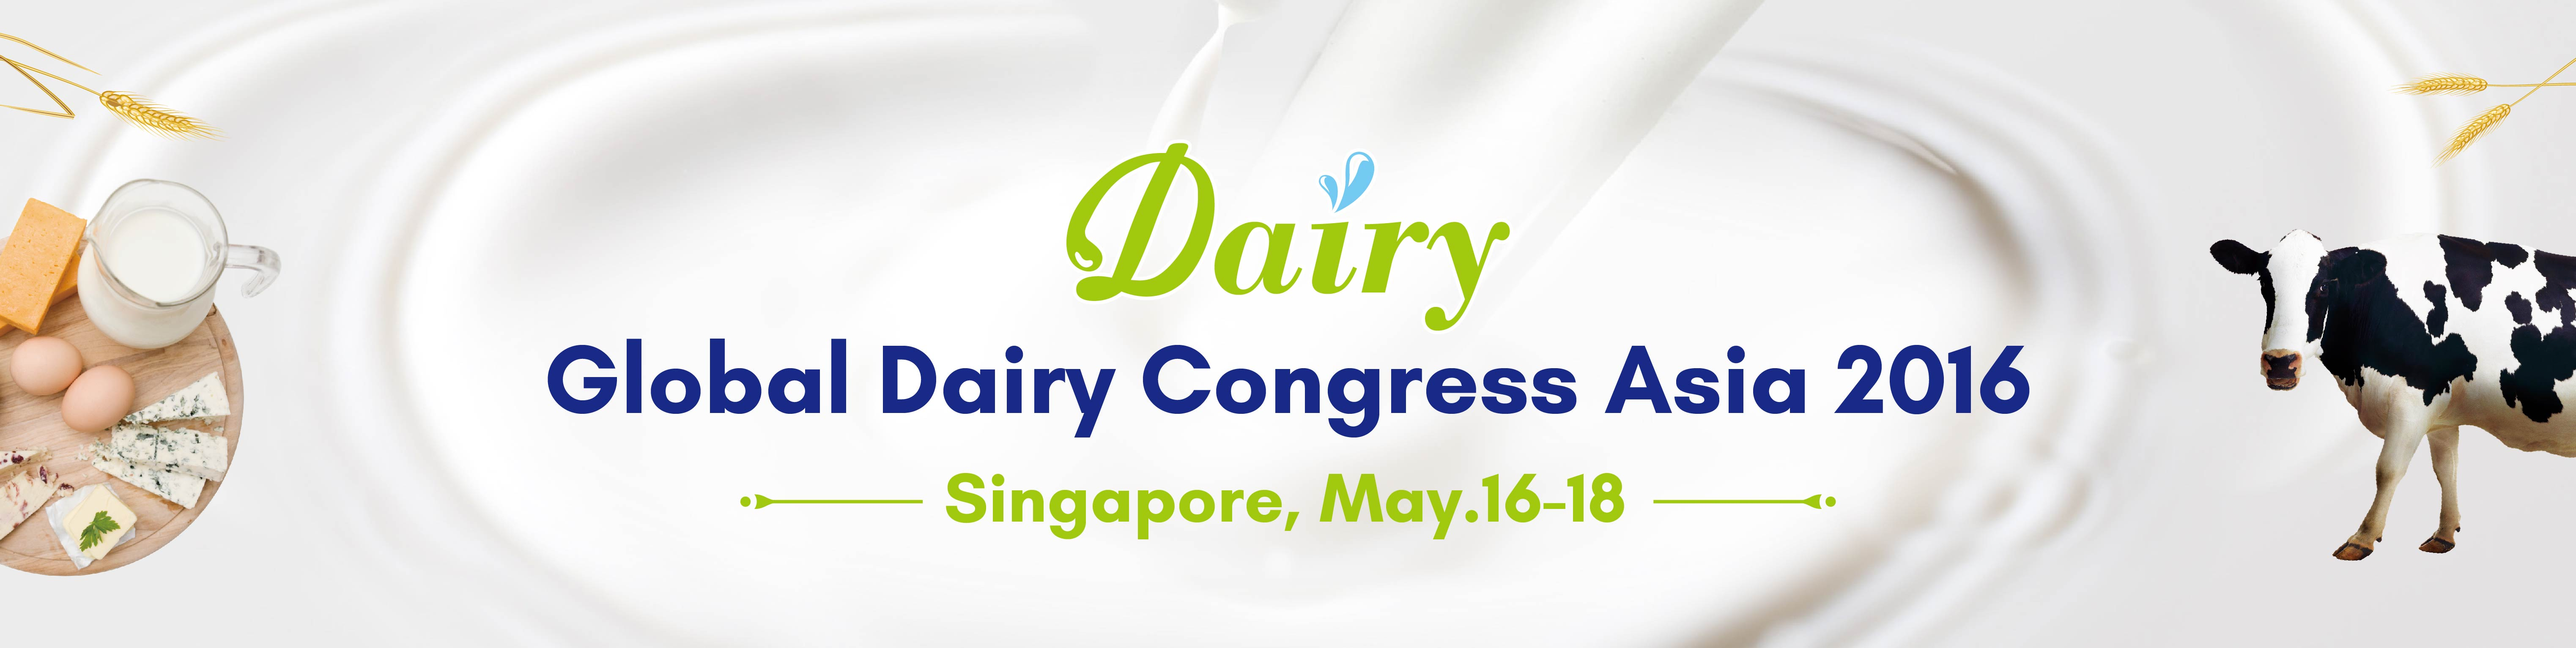 Global Dairy Congress Asia